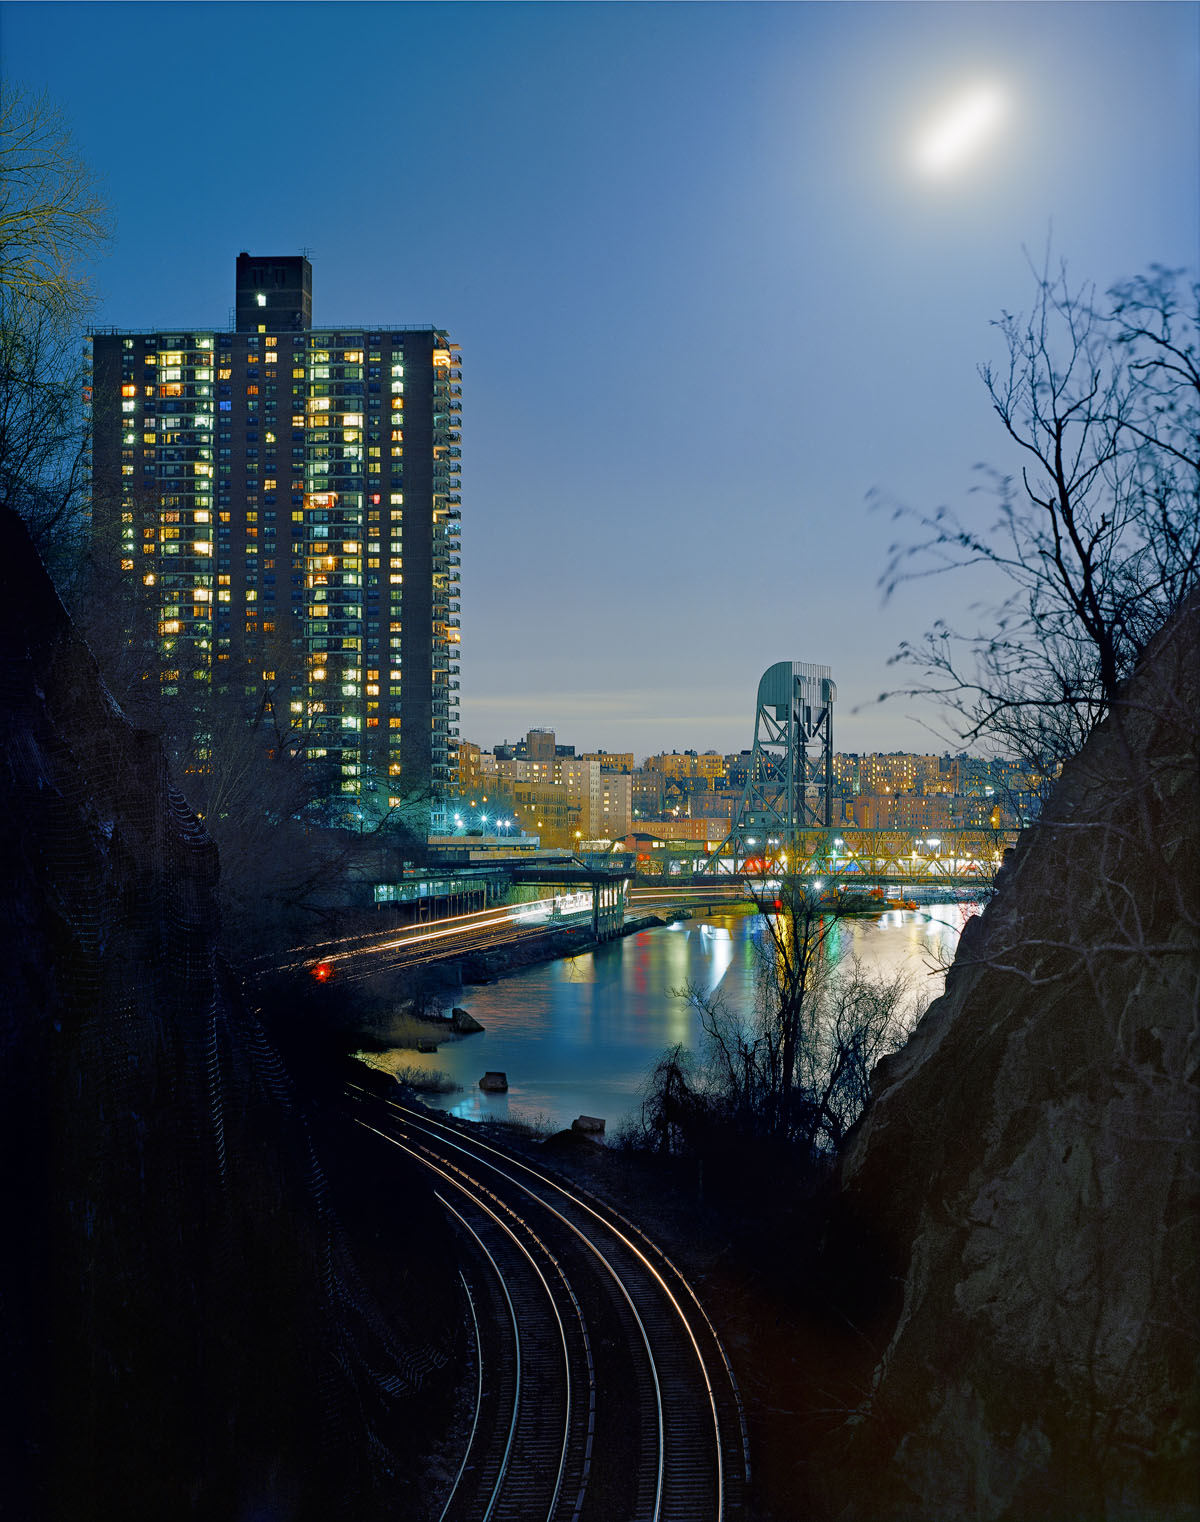 John Sanderson_01-Marble Hill Station- as seen from Spuyten Duyvil- New York_o